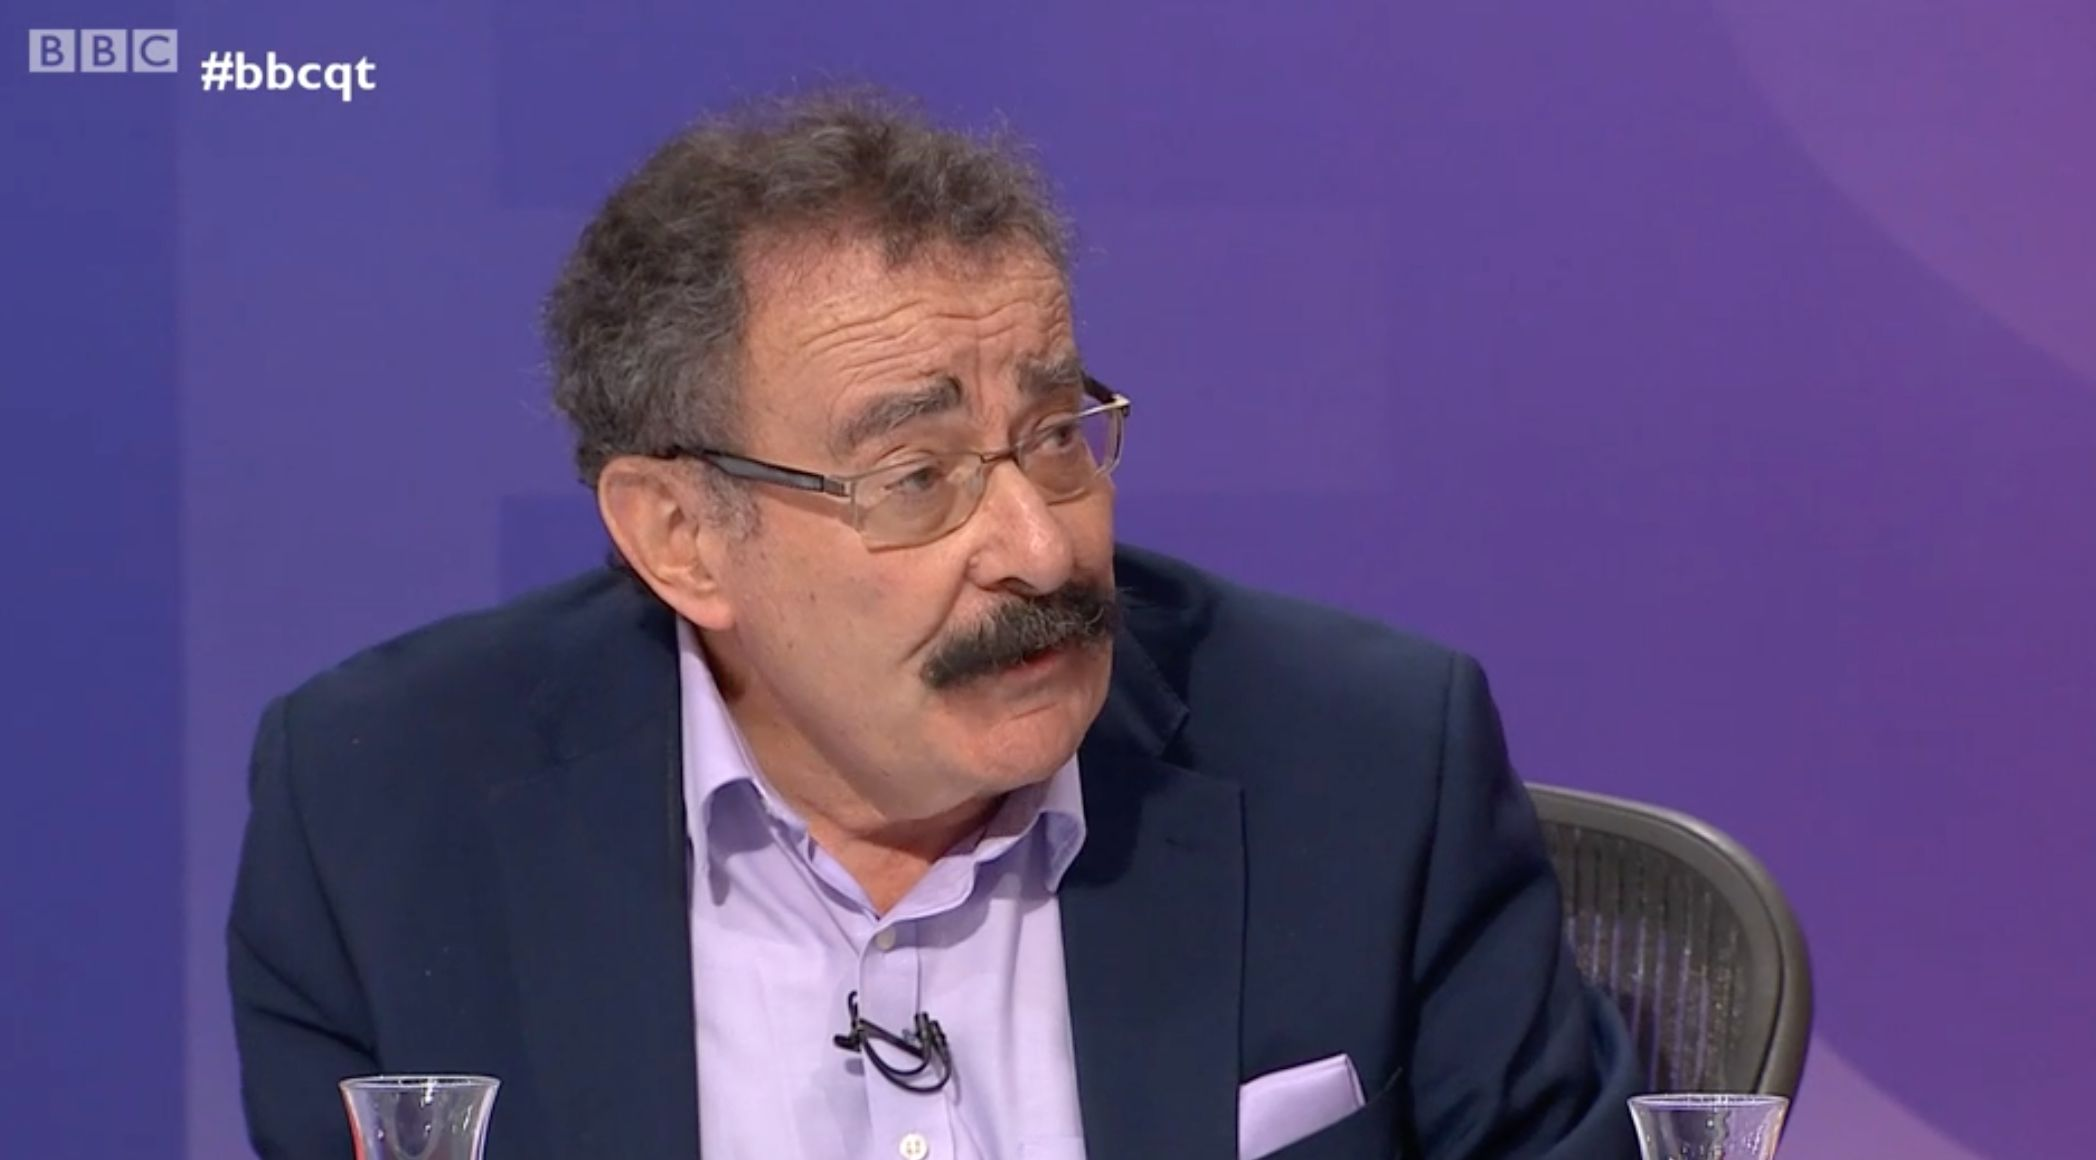 Professor On BBC Question Time Explains Why Tory Rebels Were Acting 'In The Spirit Of